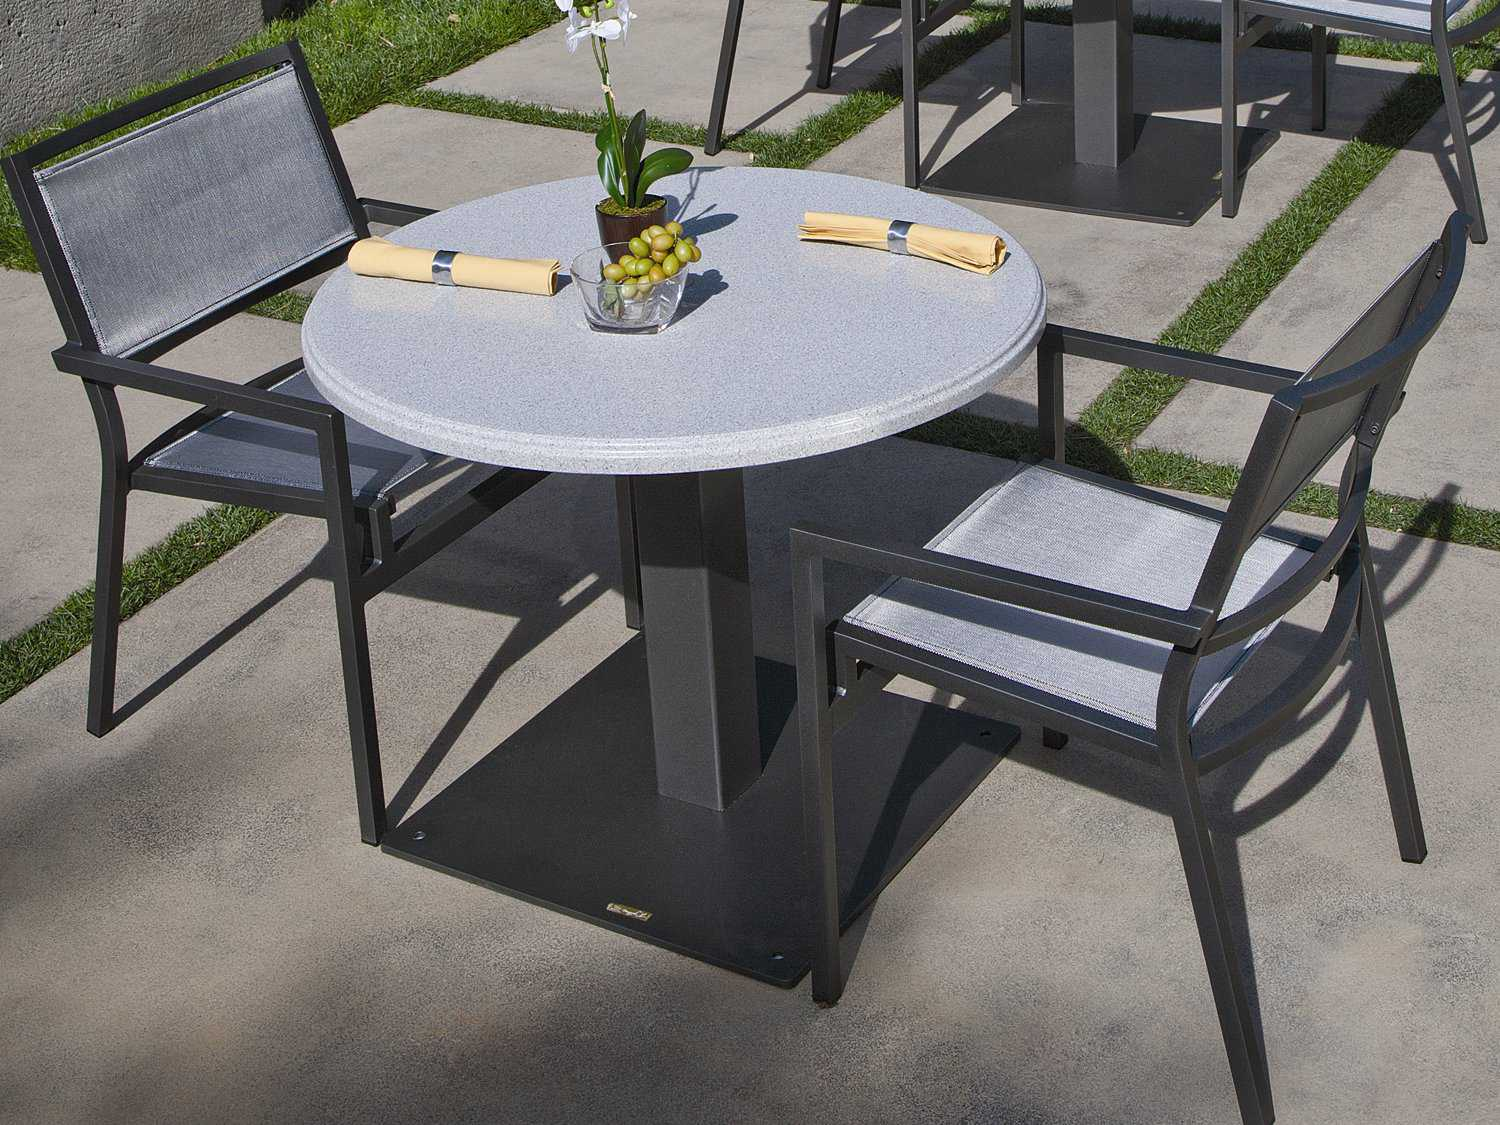 tropitone stoneworks faux granite stone 36 round solid table top fg36r. Black Bedroom Furniture Sets. Home Design Ideas